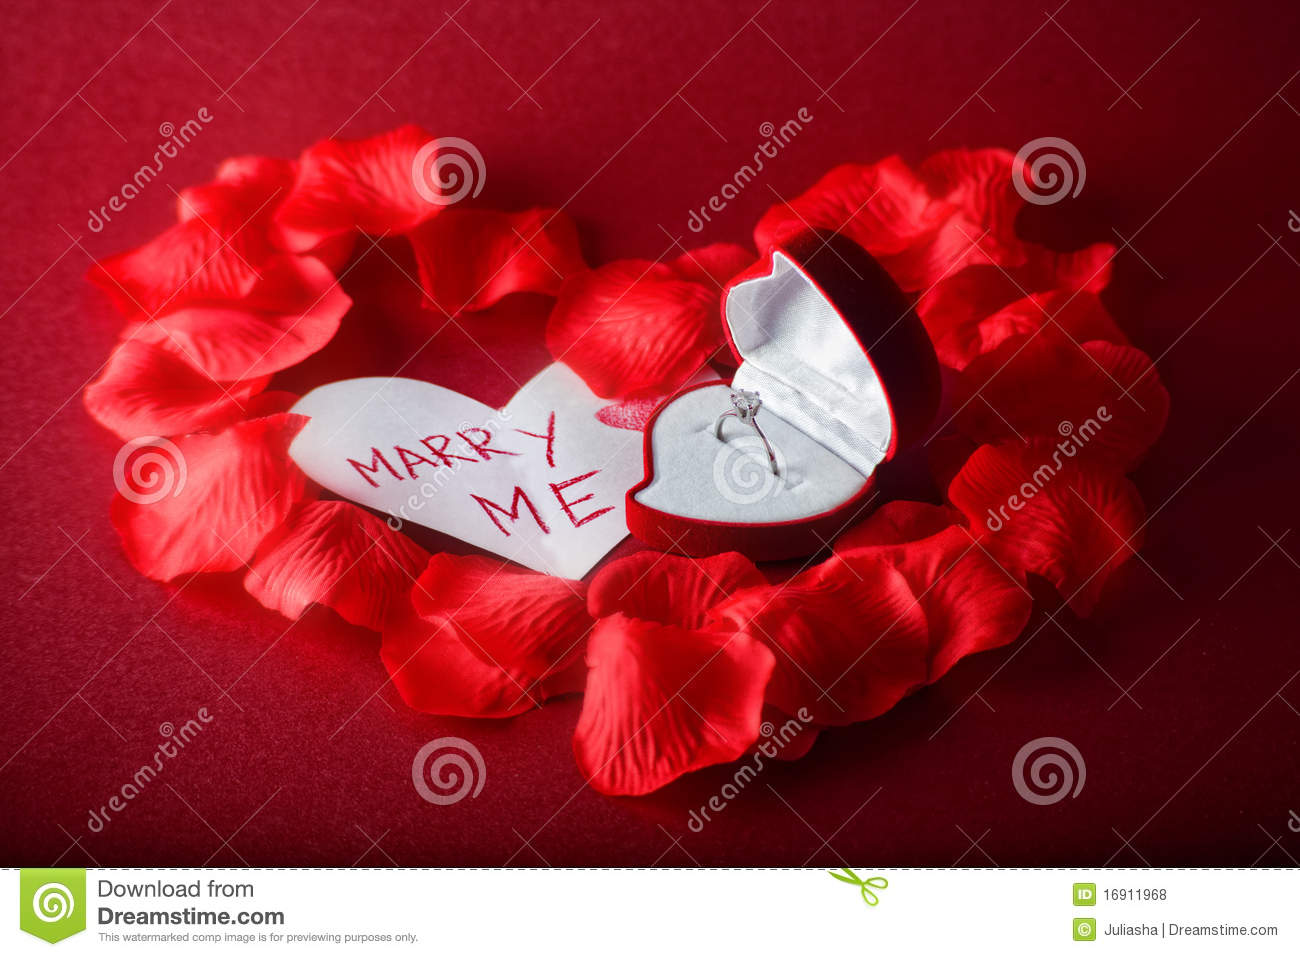 Will You Marry Me Royalty Free Stock Photos - Image: 16911968